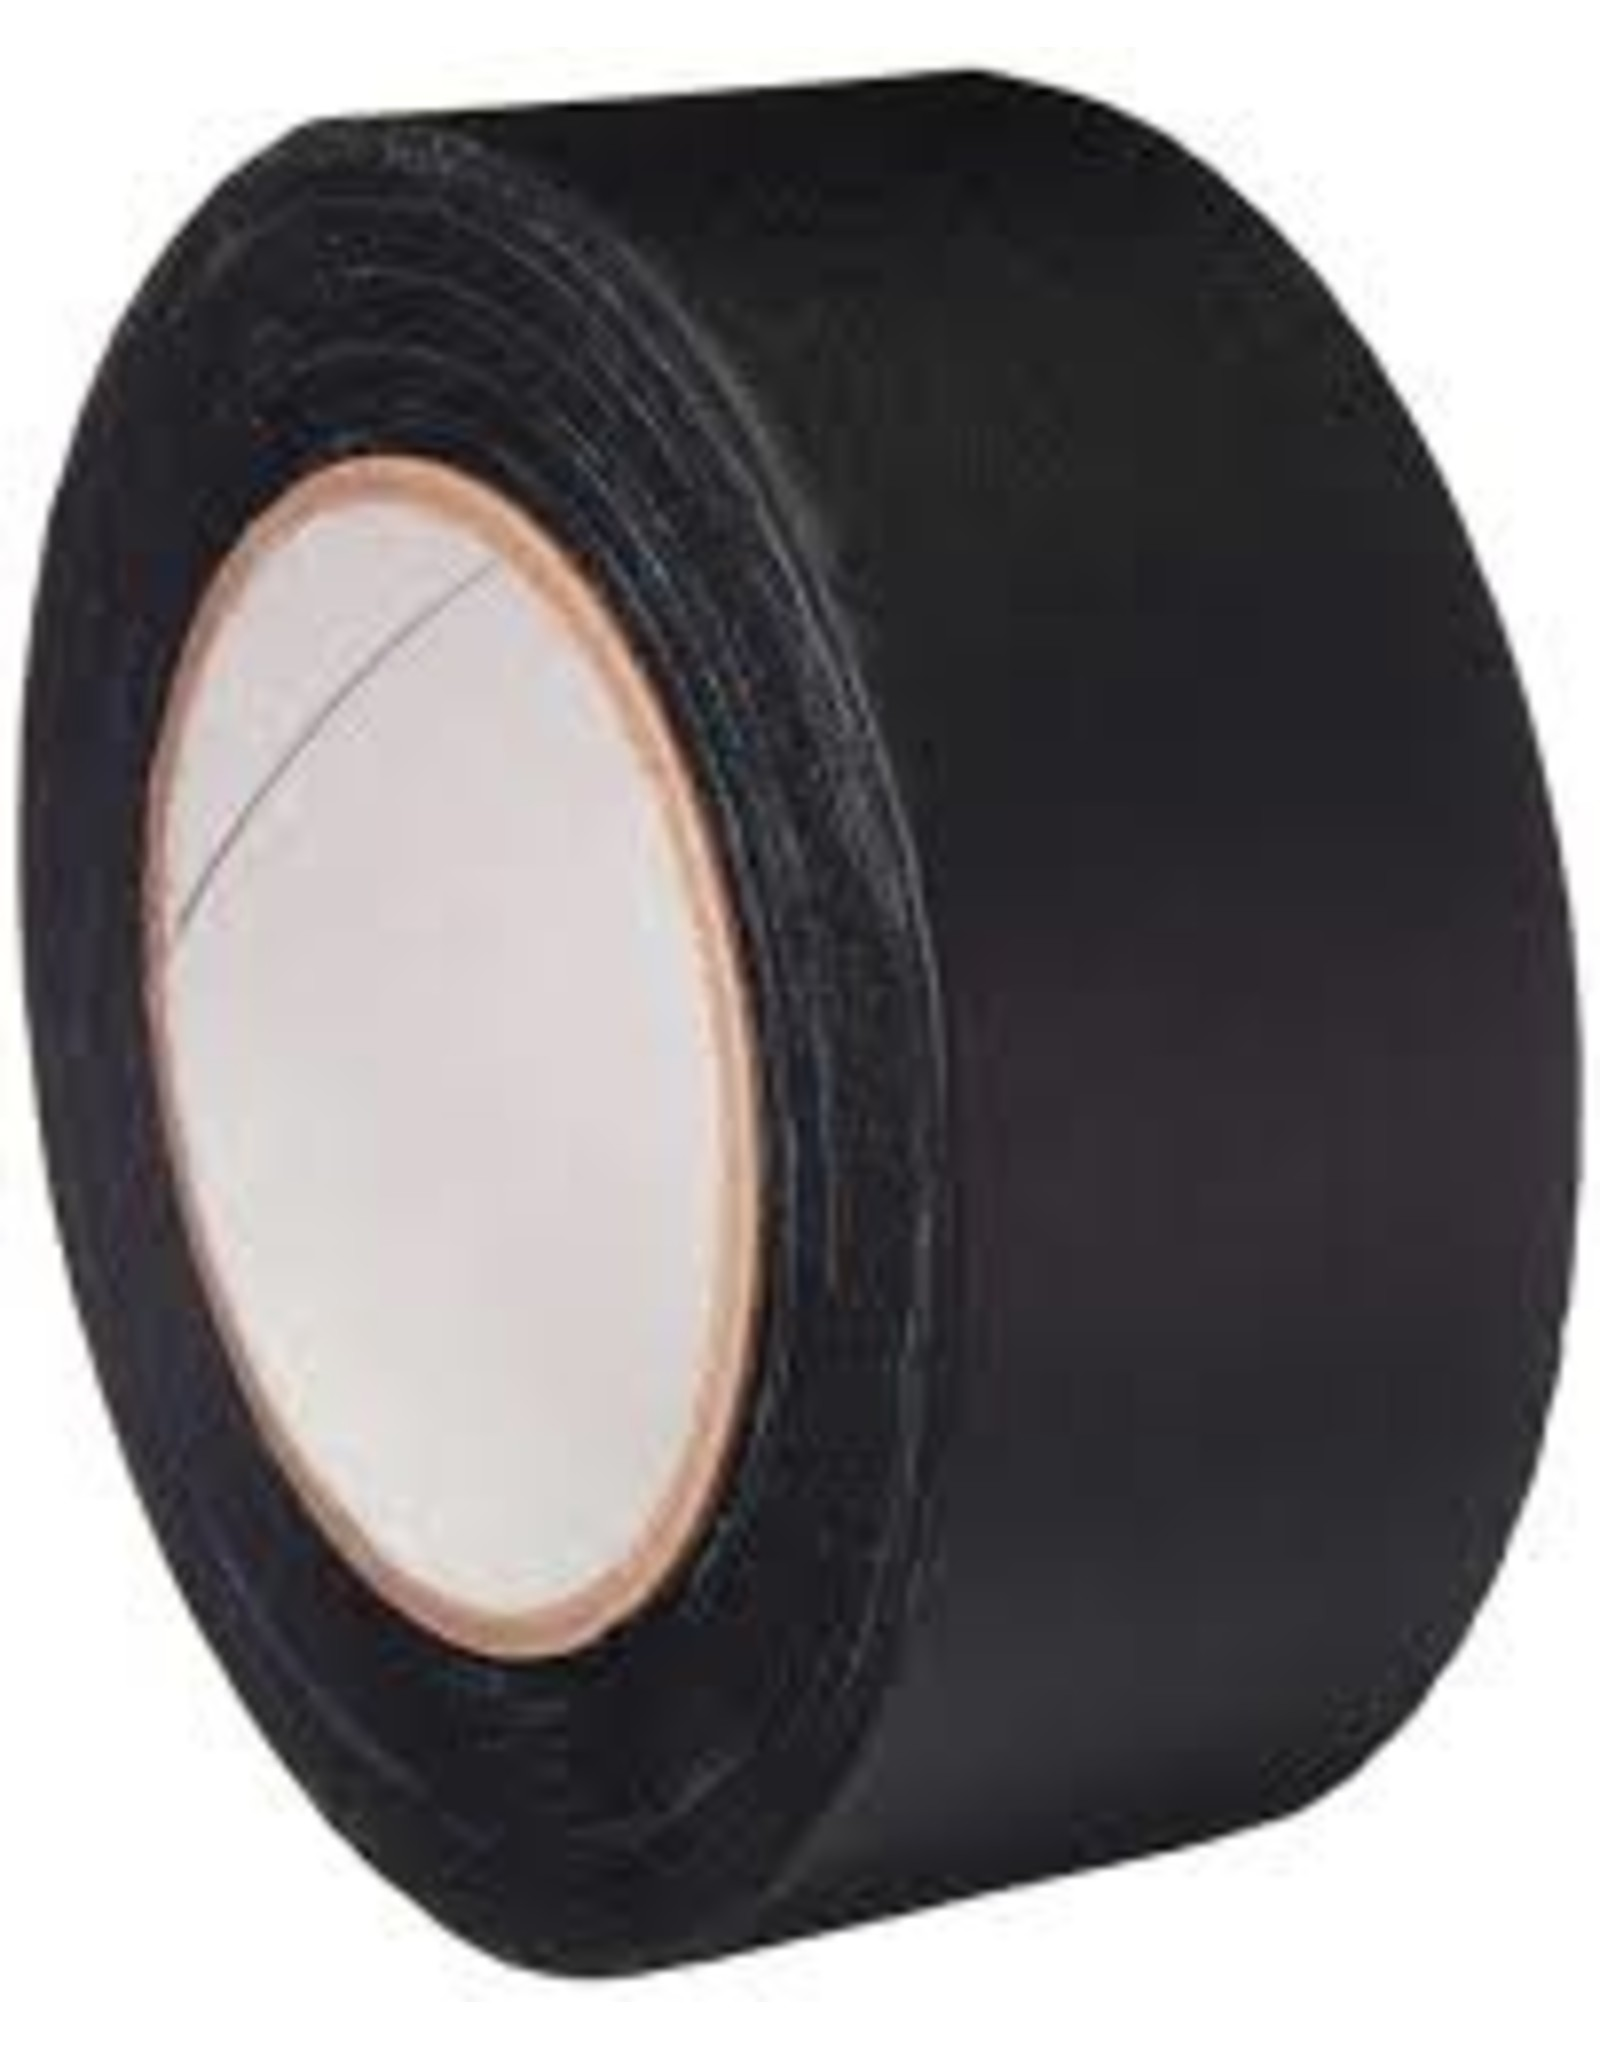 "Irish Dance Gaffer Tape 2""x10 yards"